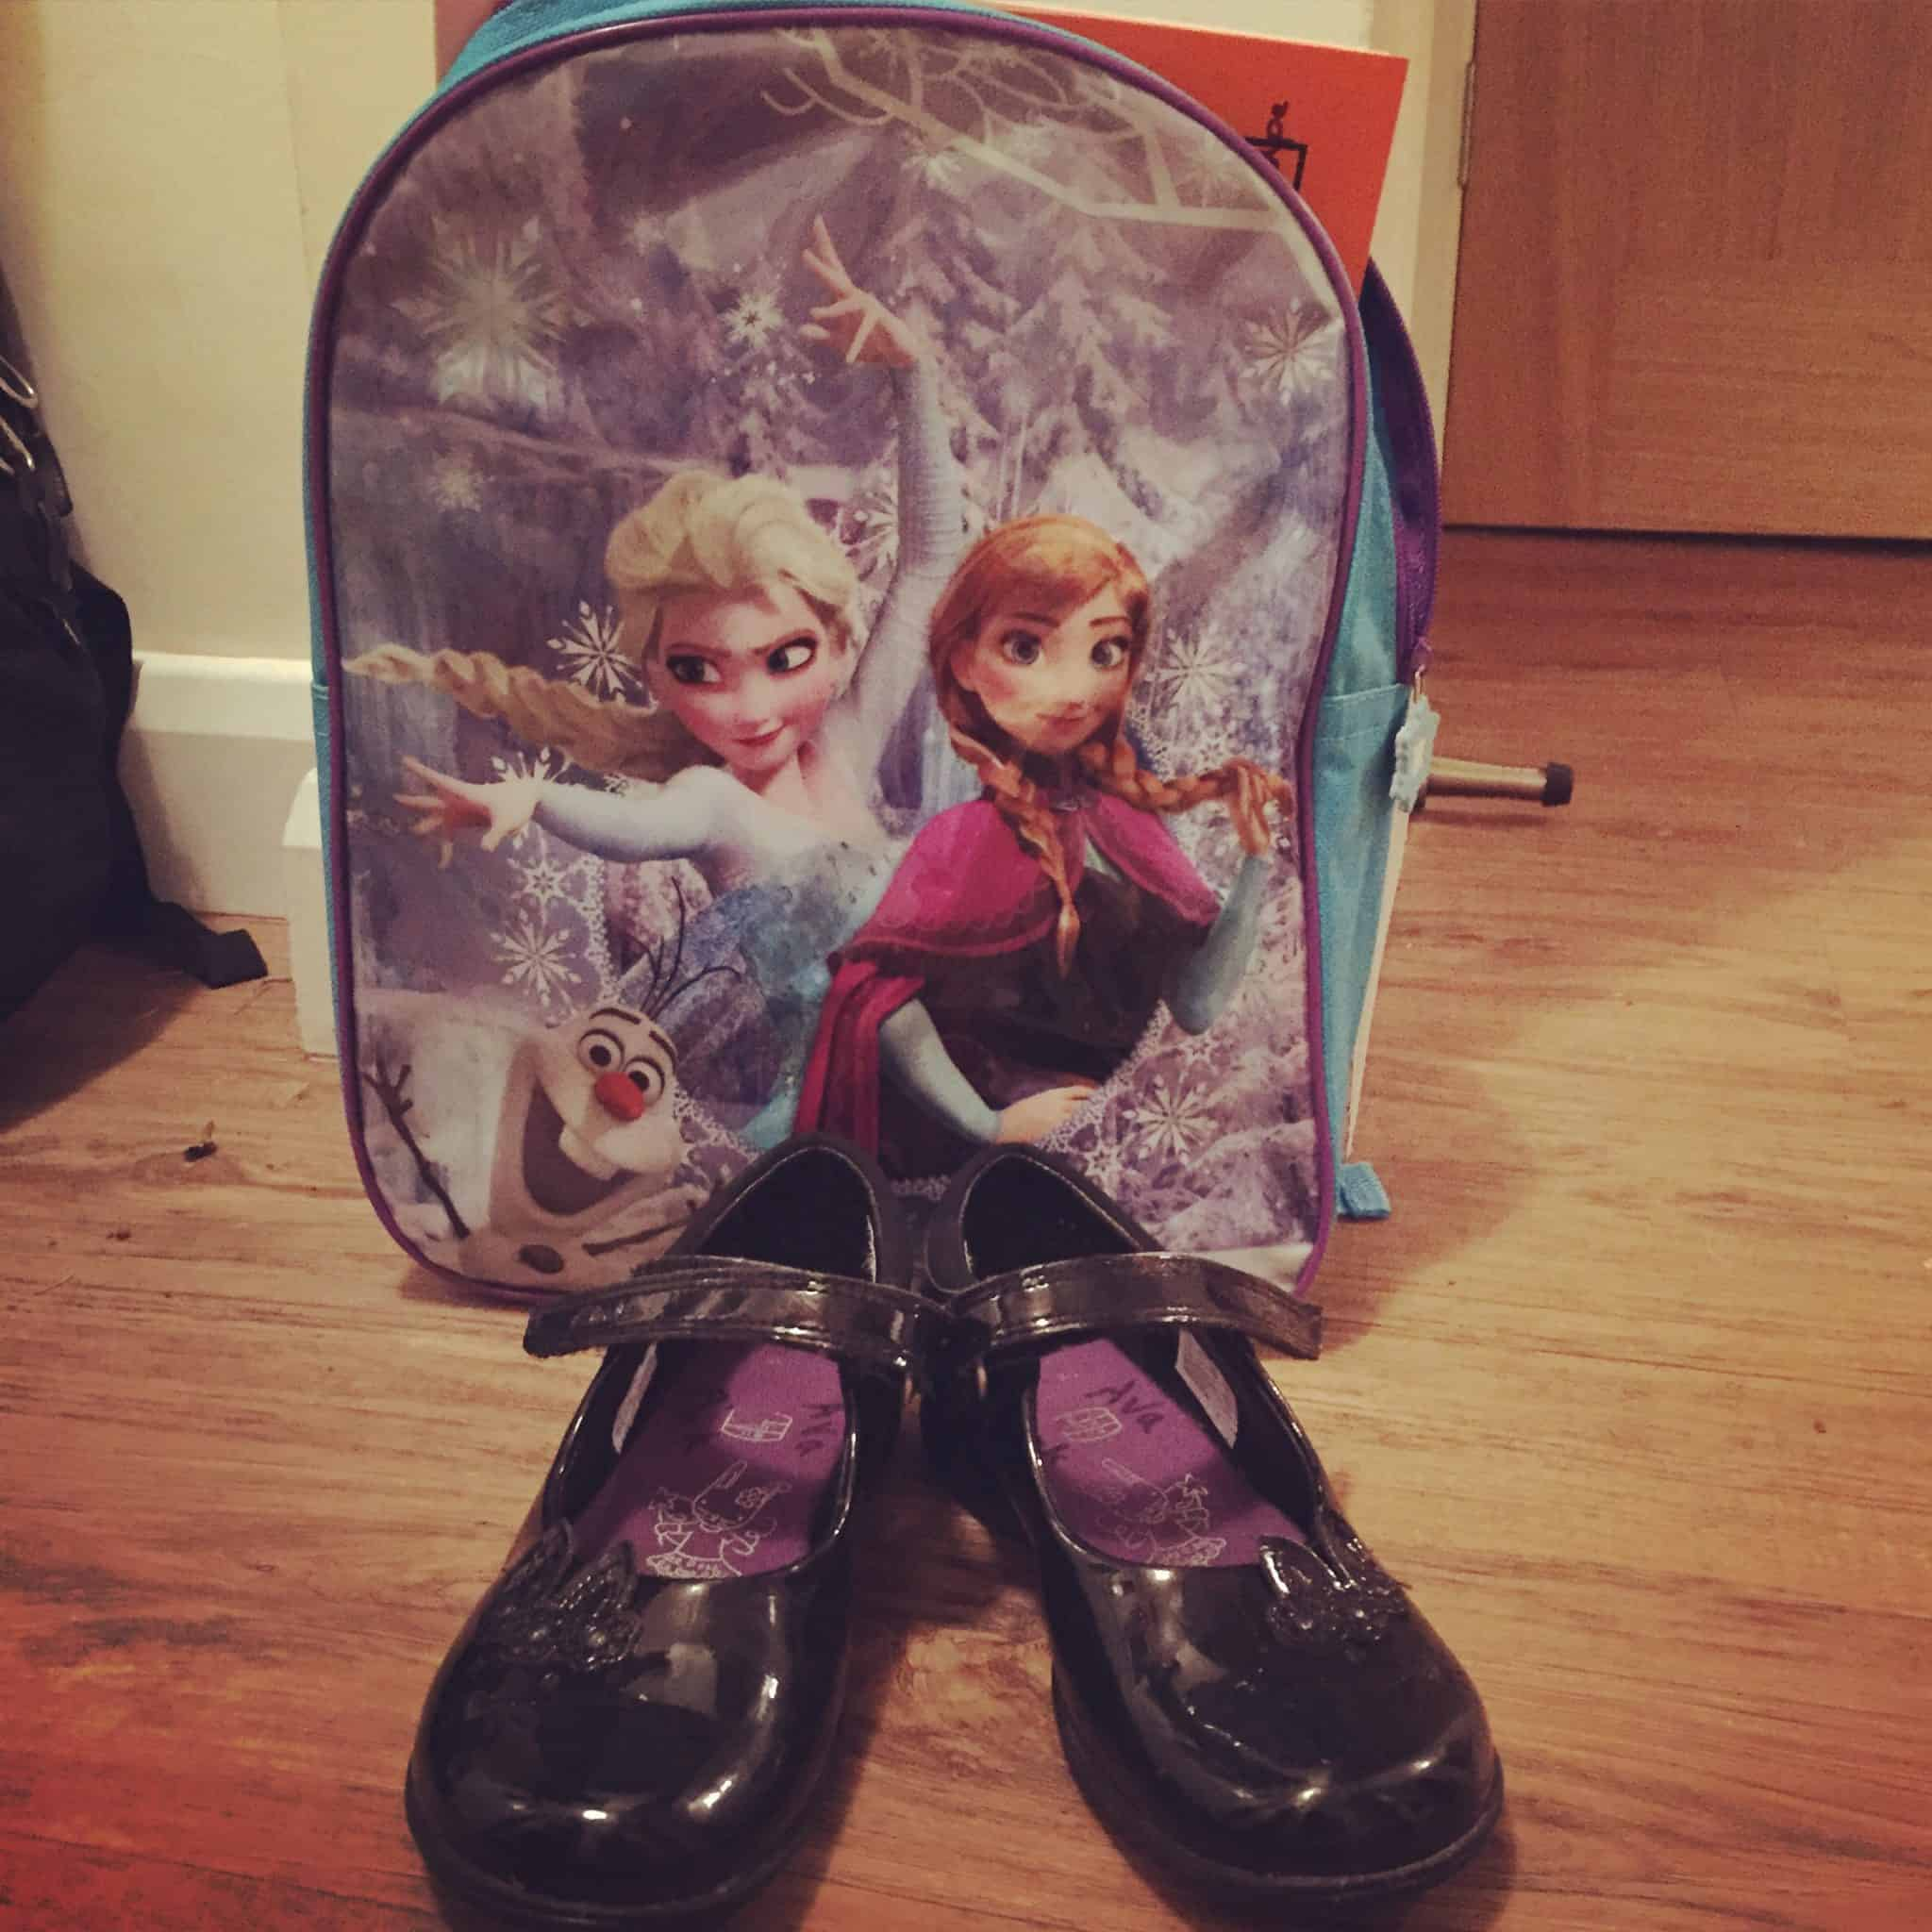 Ava's flashing Clark's shoes and Frozen backpack